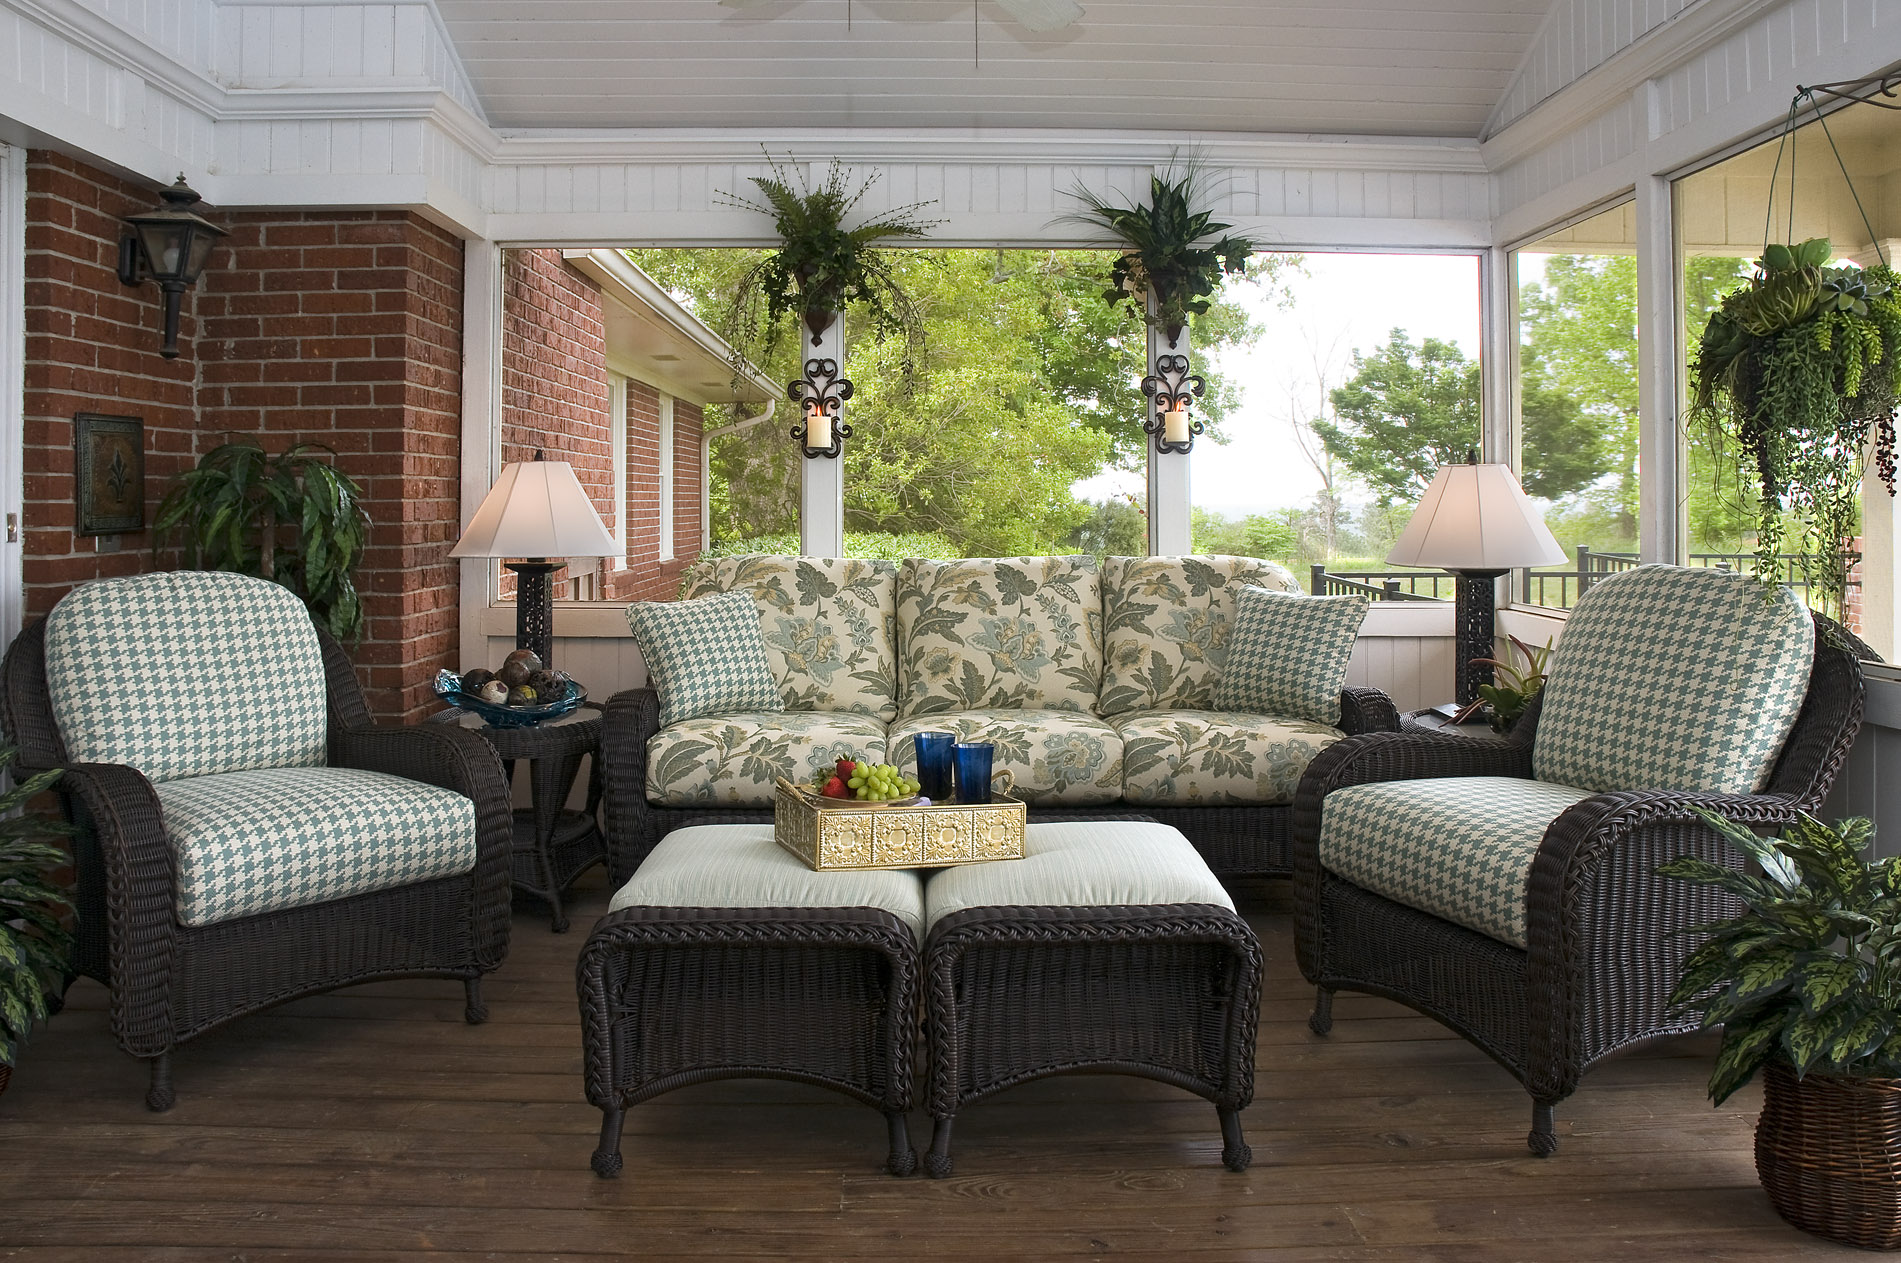 Outdoor Decorating at its finest | Catherine Pulcine - CPI ... on Outdoor Living Wicker  id=94339